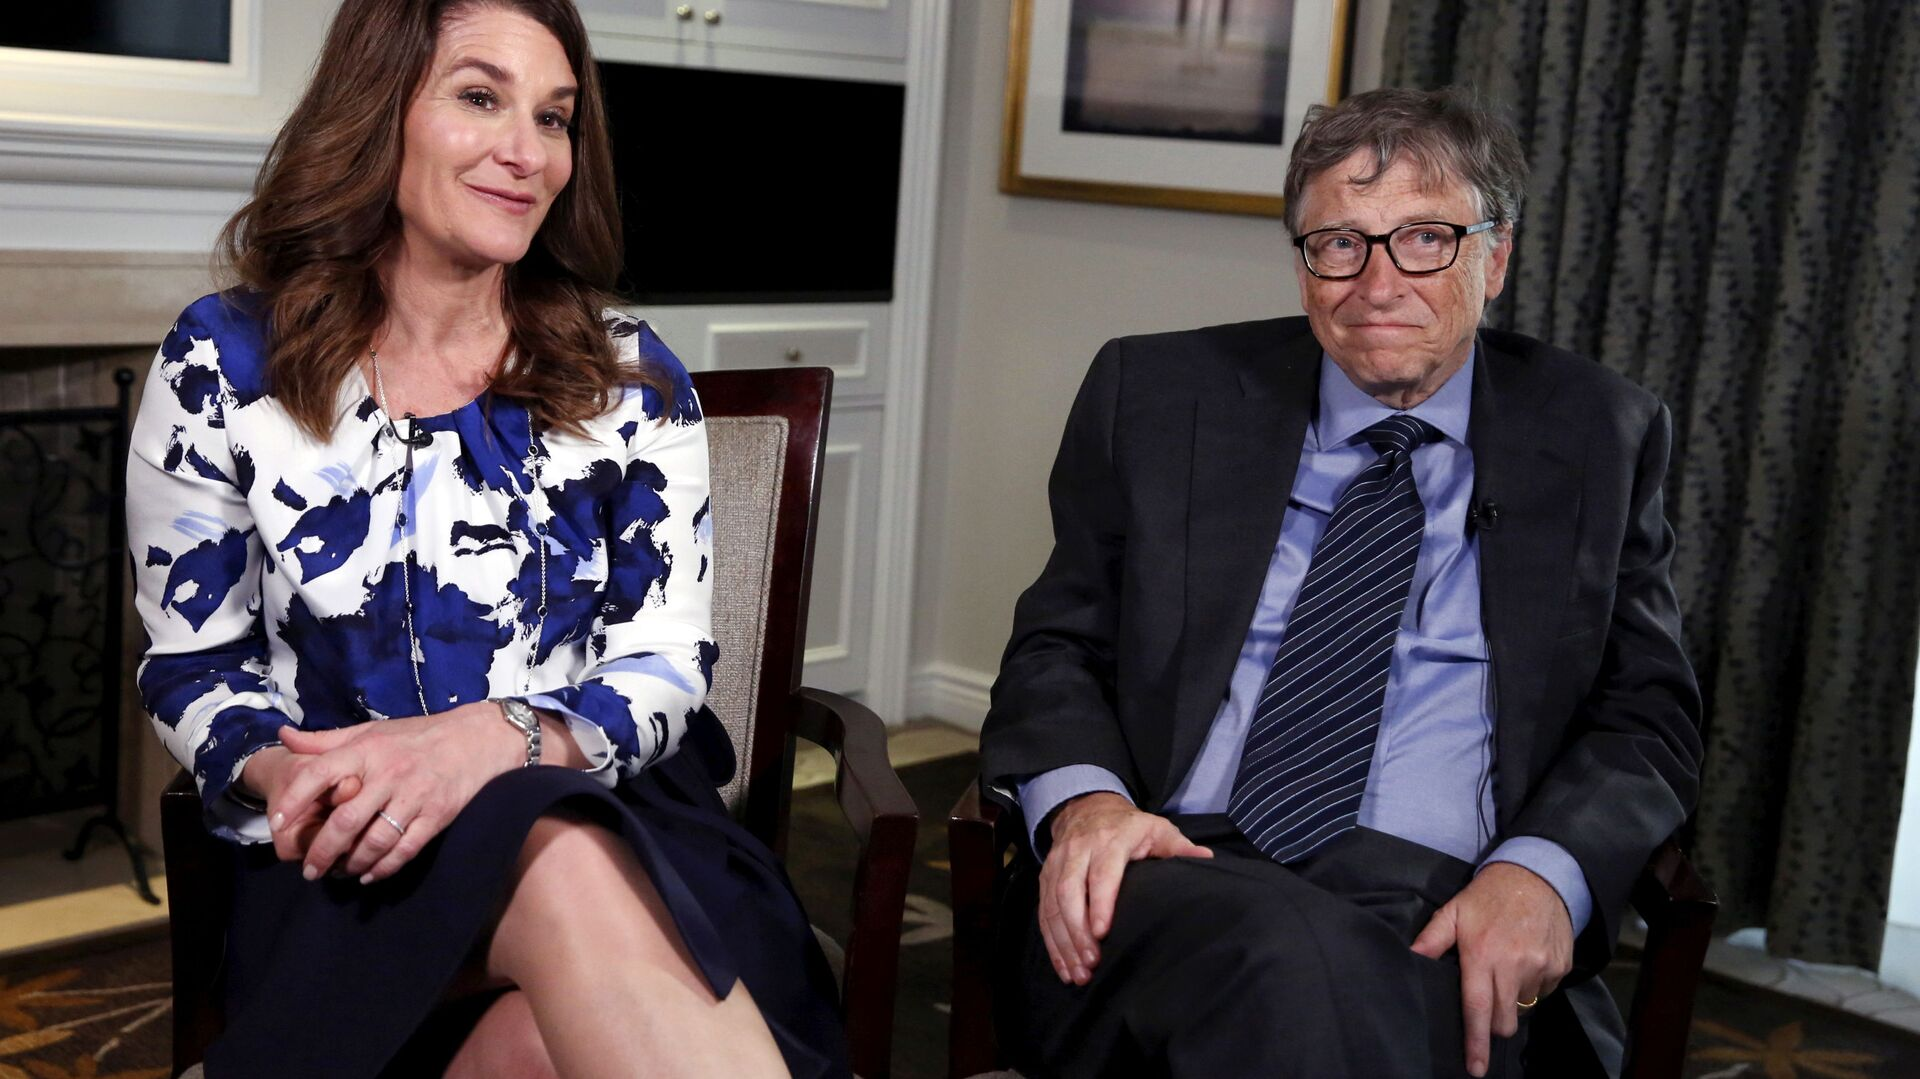 Microsoft co-founder Bill Gates and his wife Melinda sit during an interview in New York - Sputnik Italia, 1920, 08.07.2021